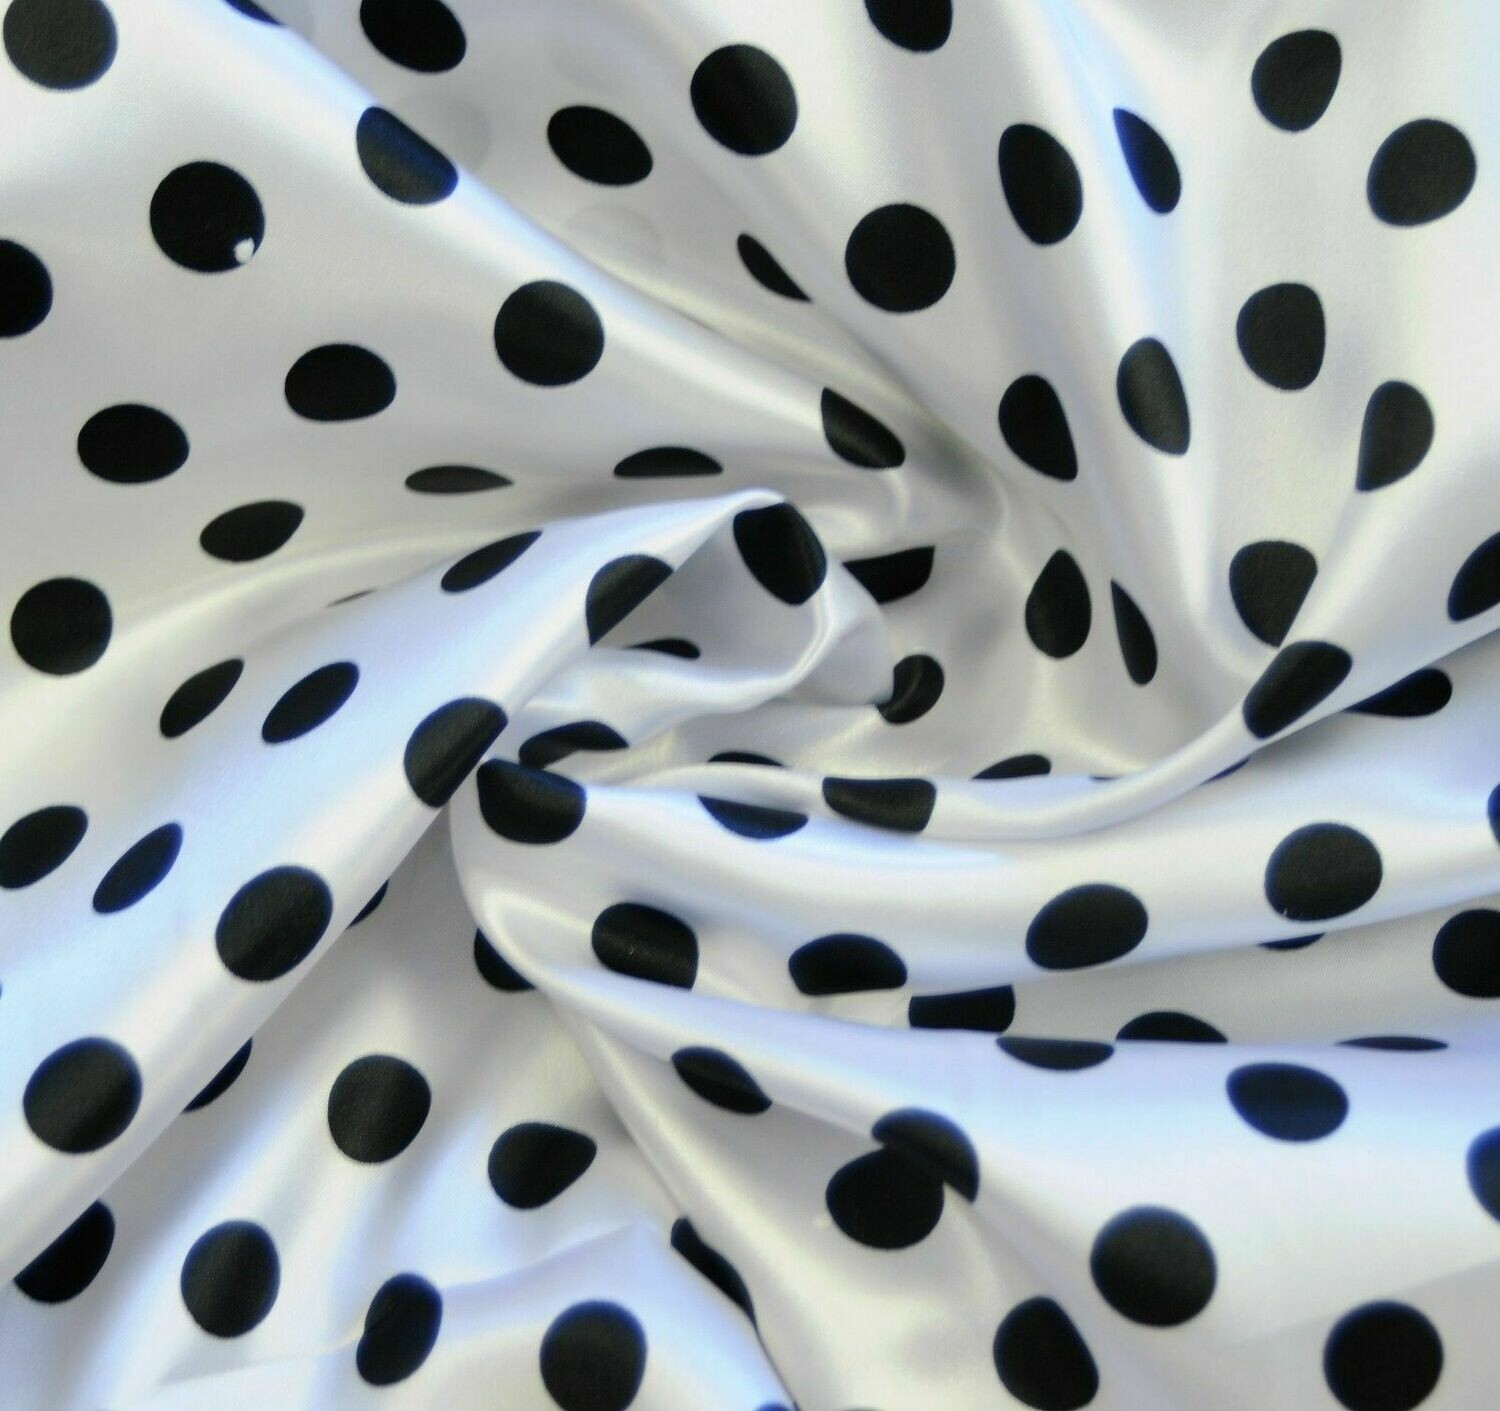 Polka Dot White Black SHINY SATIN 100% Polyester Pantie Lingerie Fabric 60